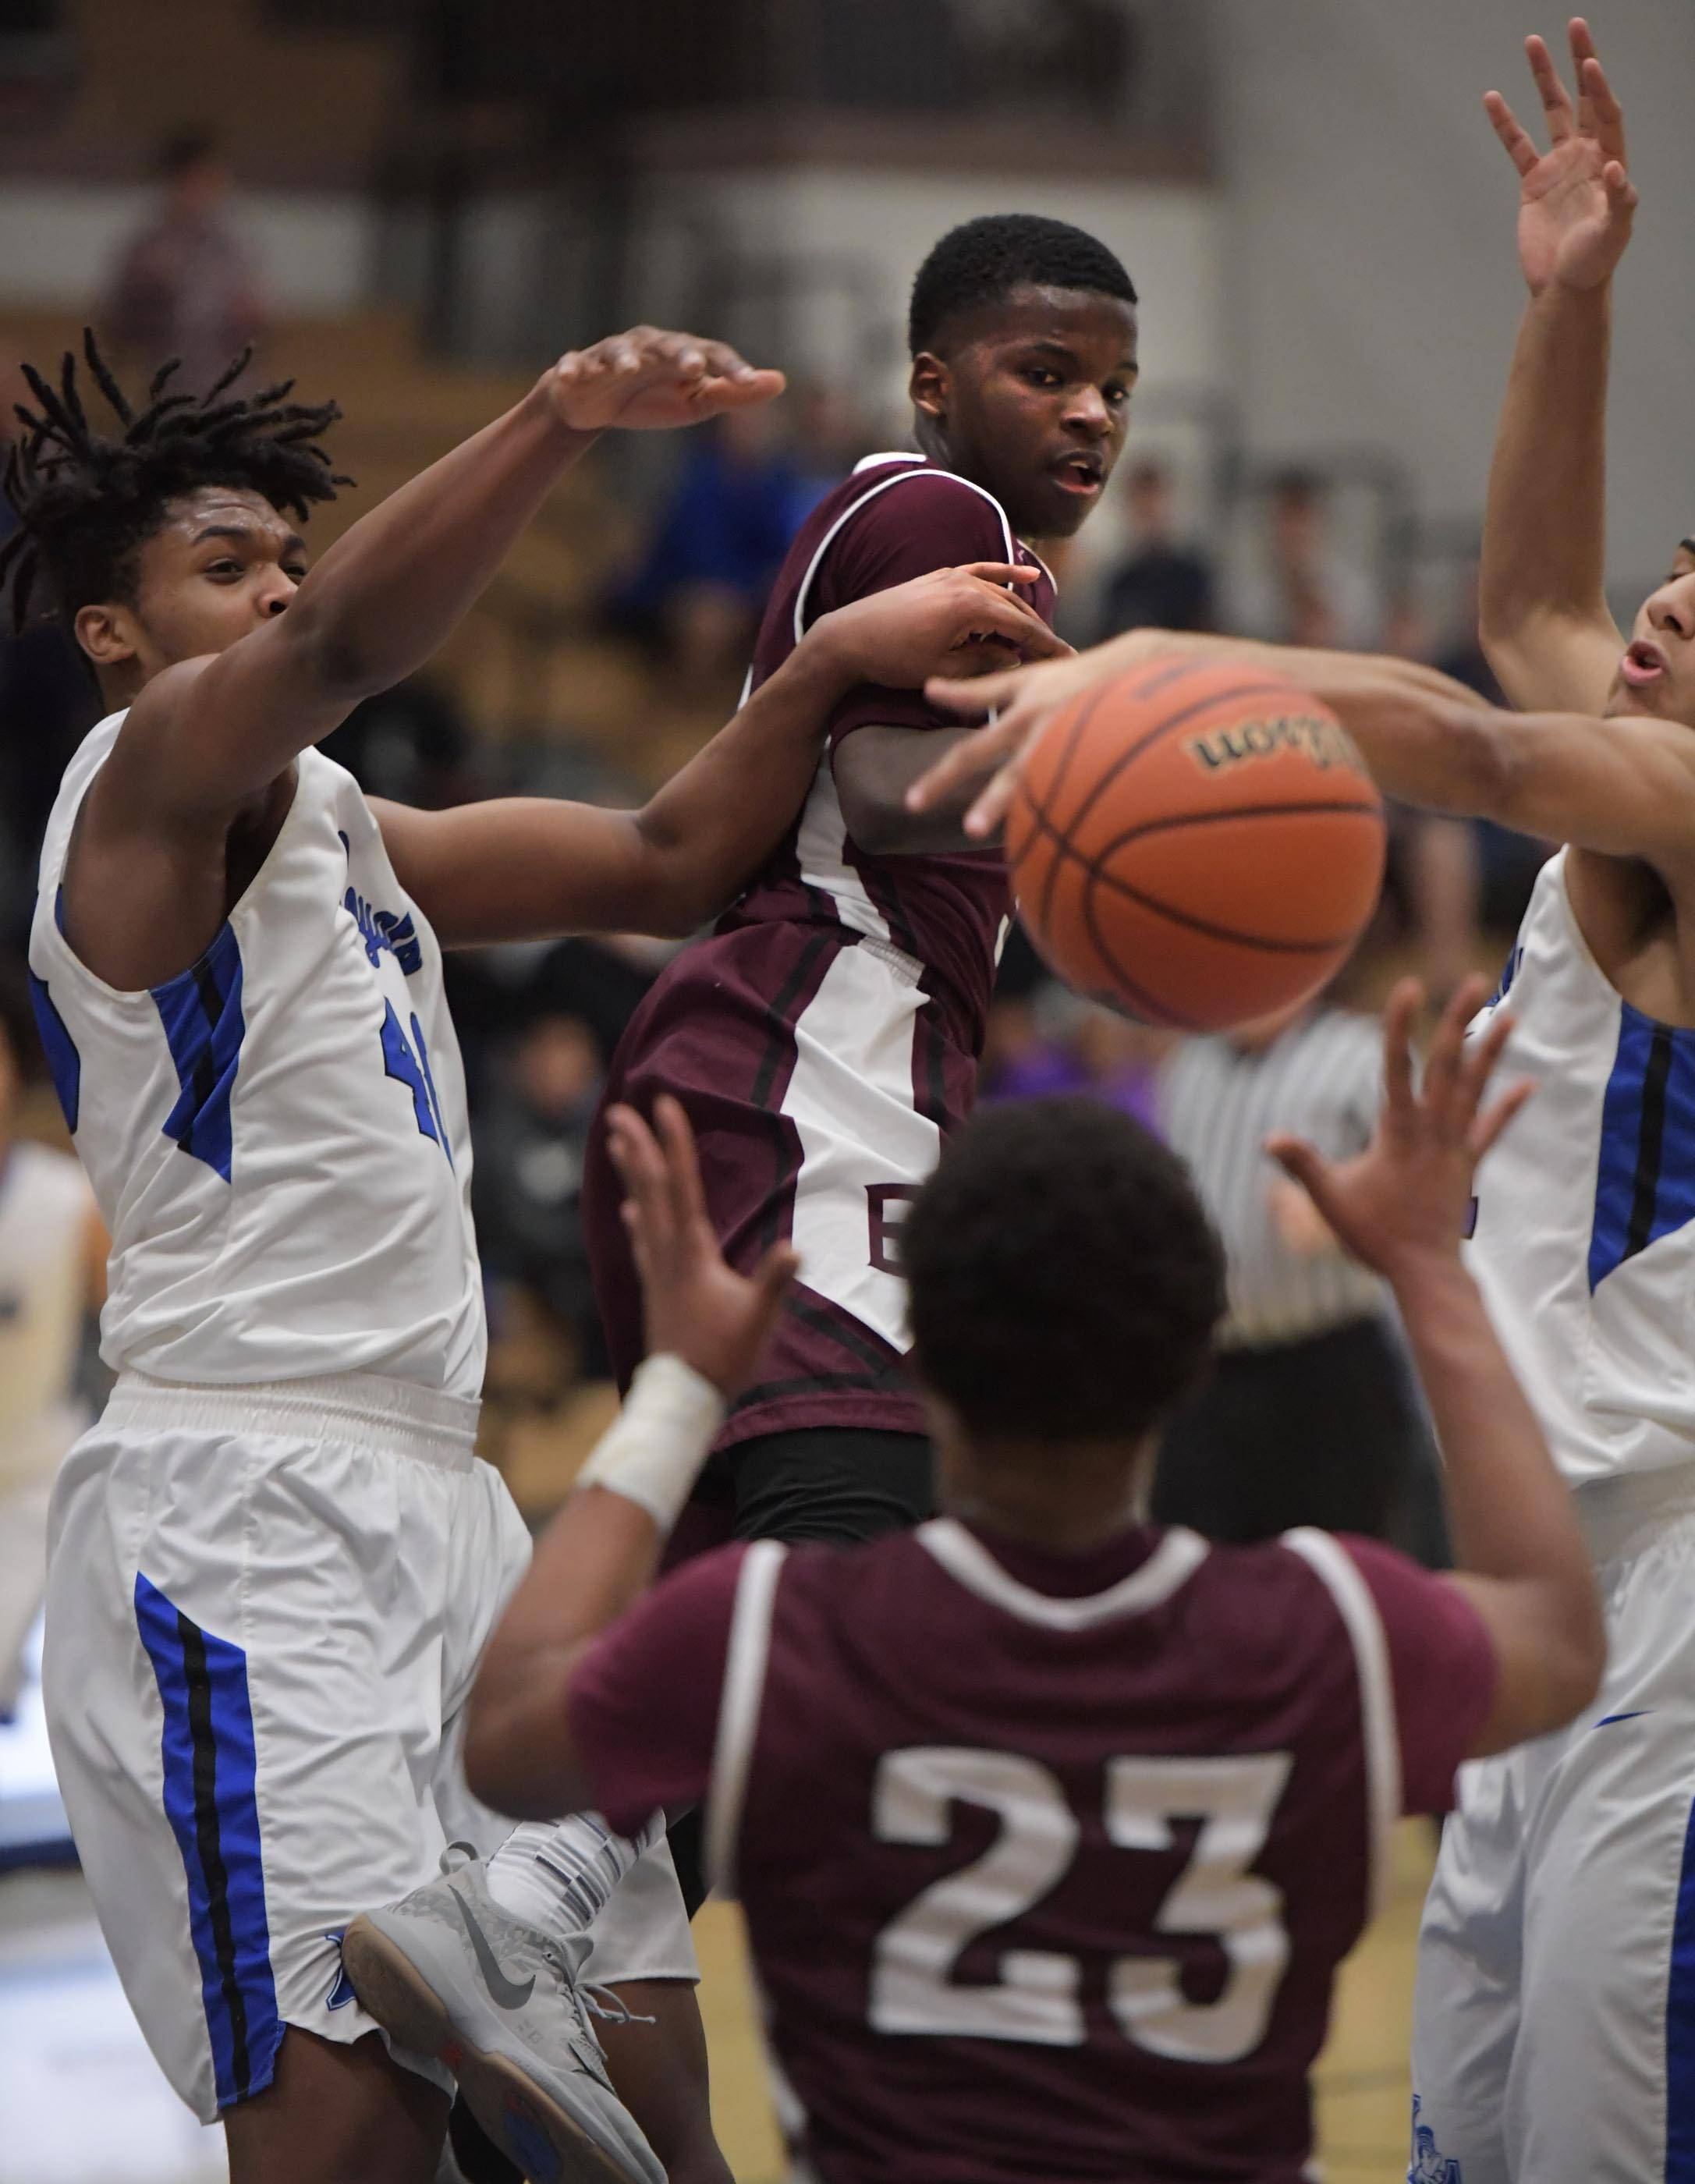 Elgin's Trevon Morris gets a pass to teammate Daz Cooks between the defense of Larkin's Jalen Shaw and Anthony Lynch Tuesday in the St. Charles North boys basketball regional game.